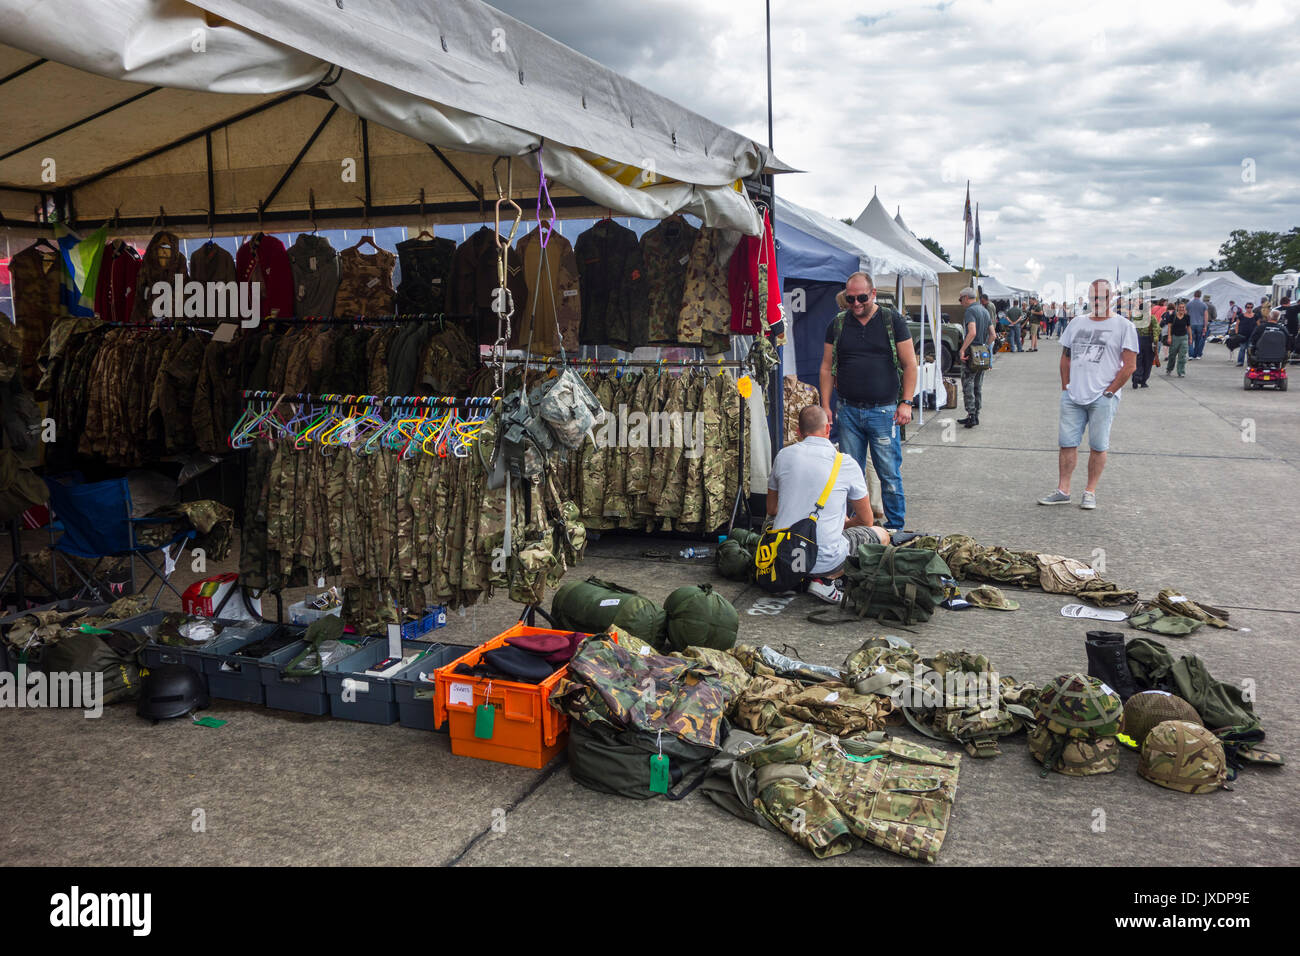 Military uniforms and battle dresses for sale in booth at militaria fair - Stock Image